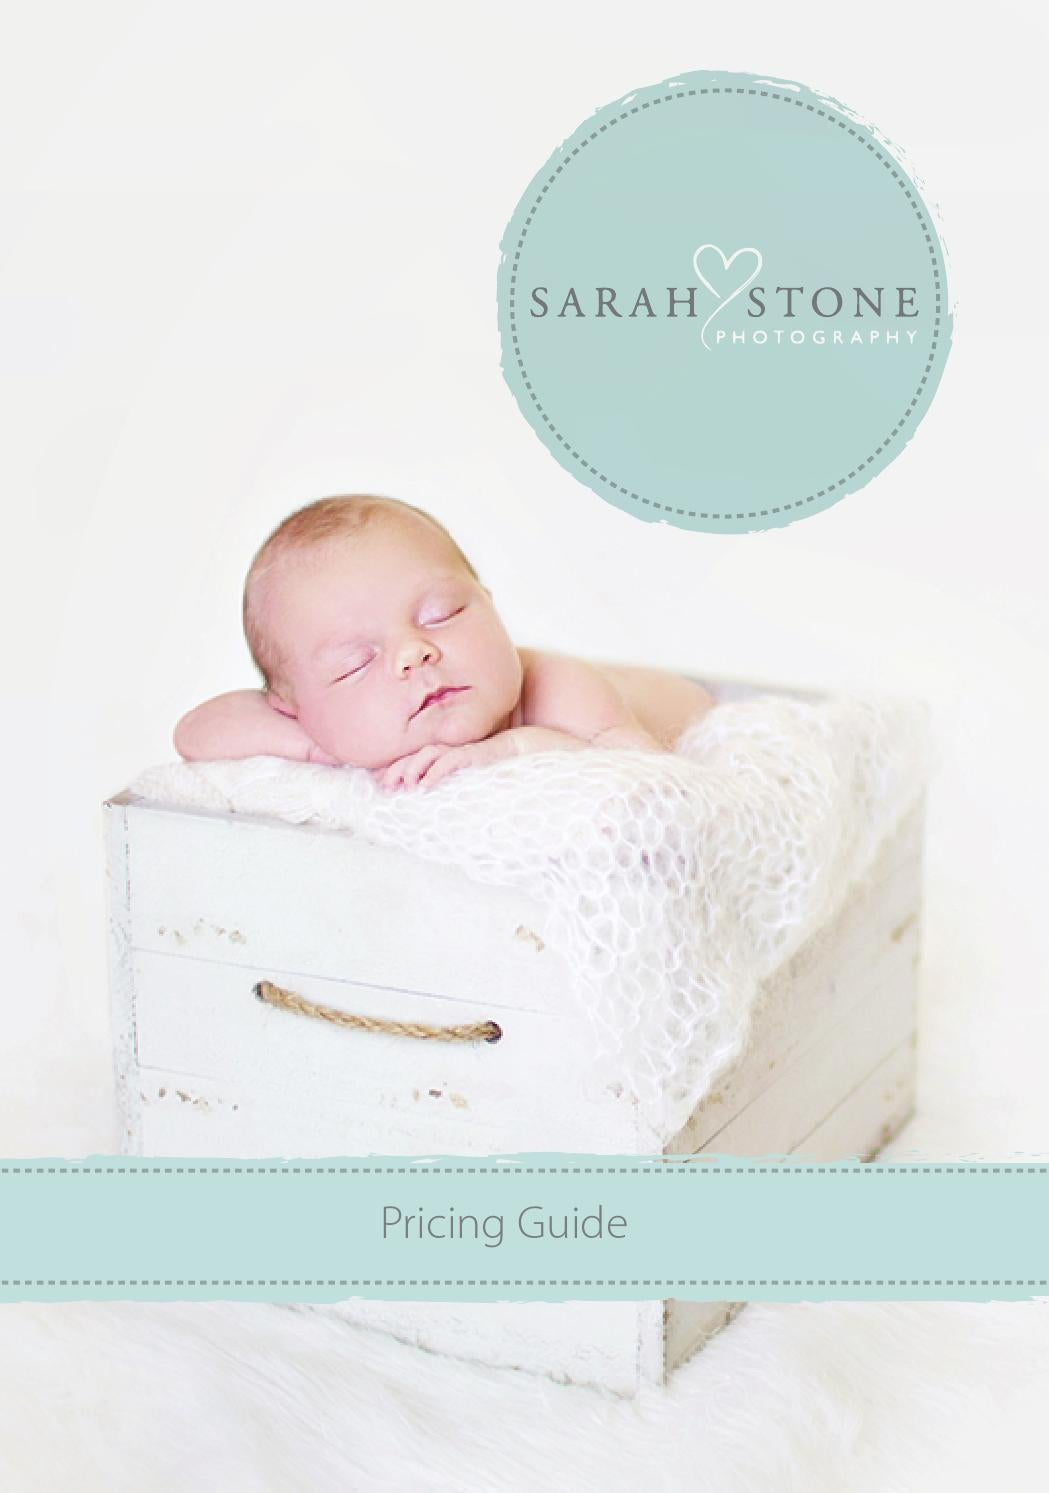 Sarah Stone Photography - Pricing Guide by Sarah Stone - issuu